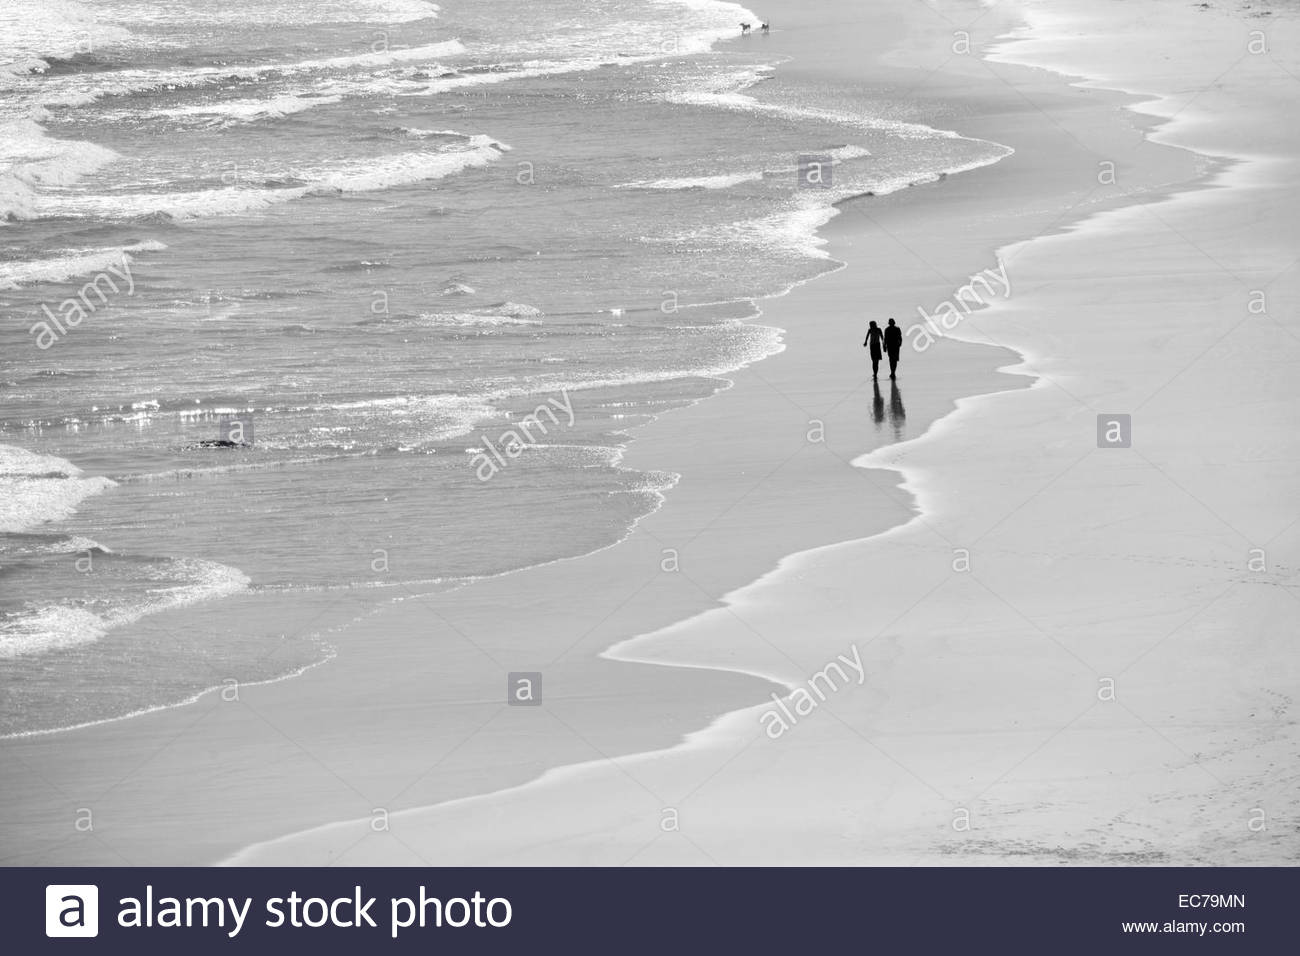 Couple walking along picturesque beach with waves - Stock Image